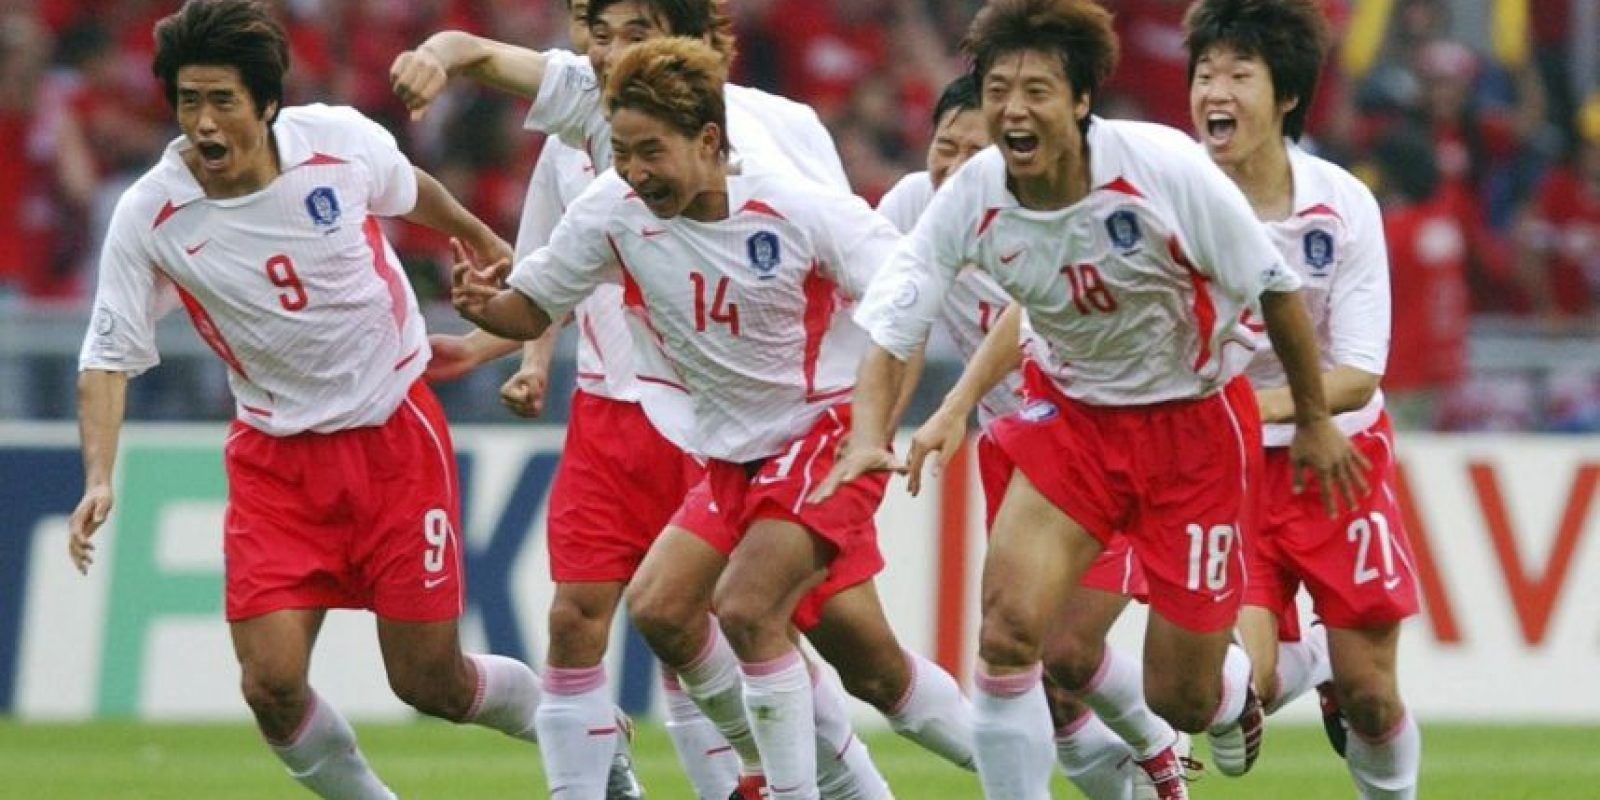 2. Corea del Sur vs. España Foto: Getty Images